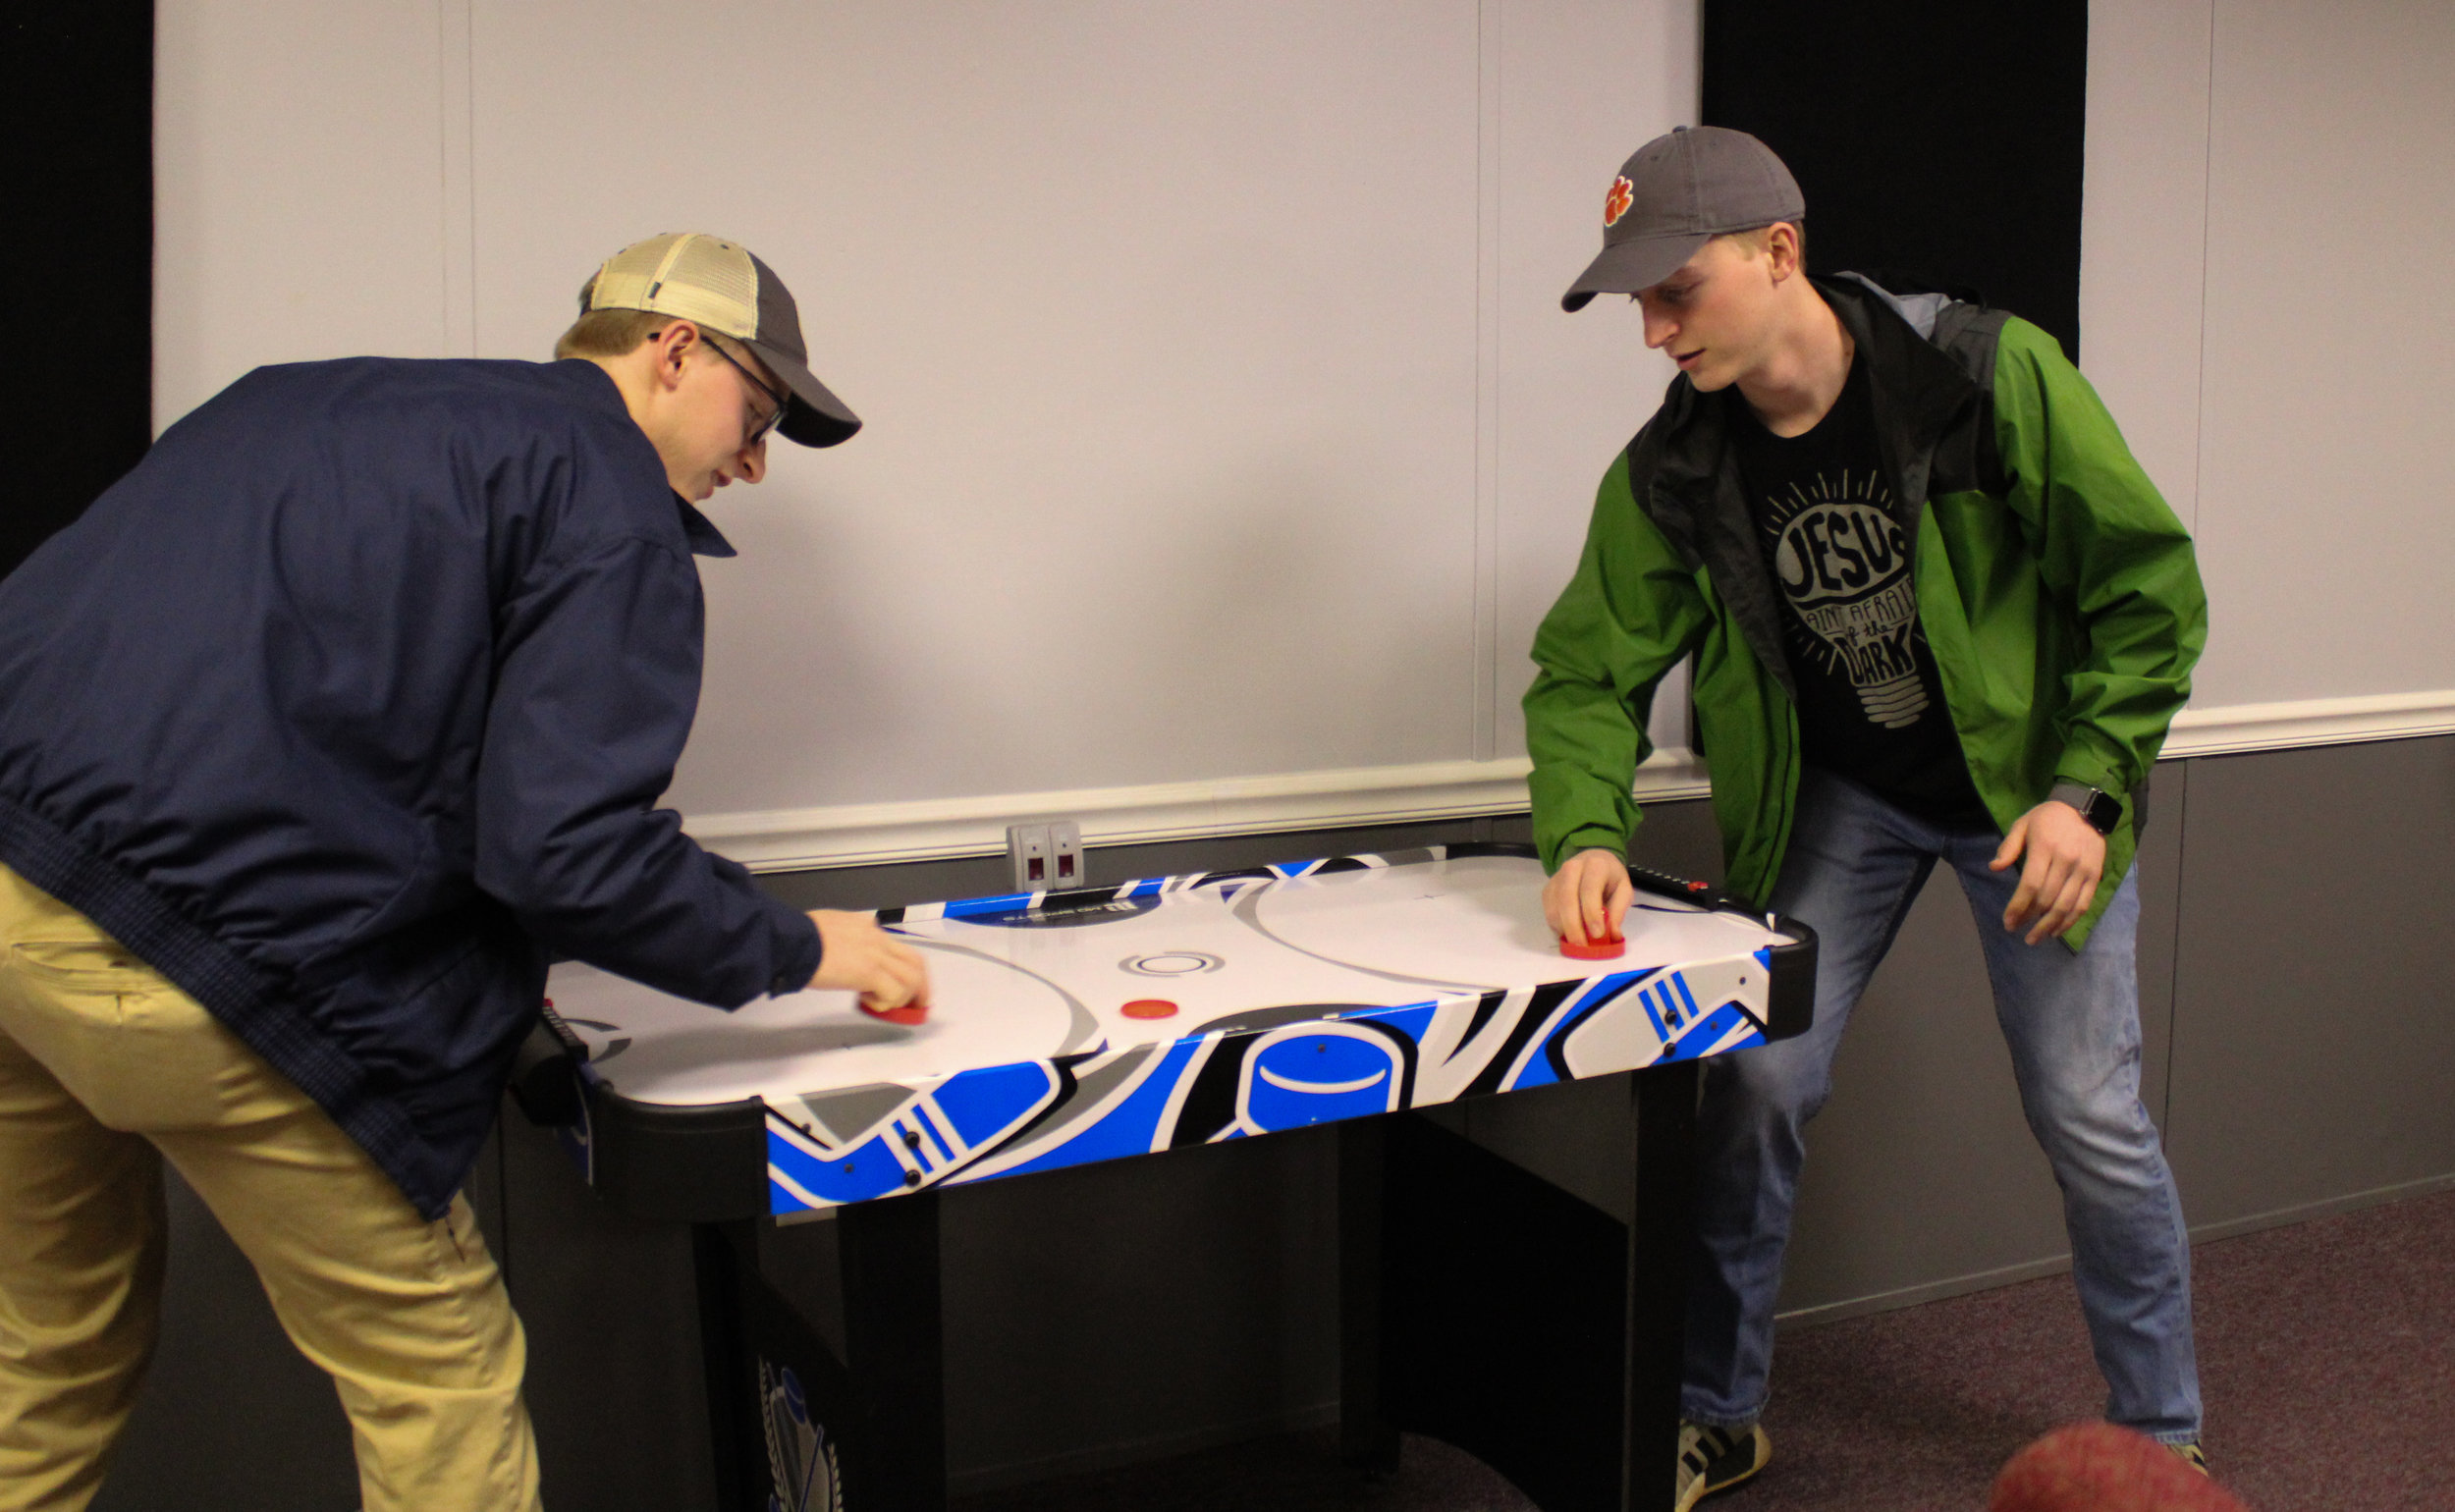 Youth leaders Will and Nathan Ingle brawl in a game of air hockey.